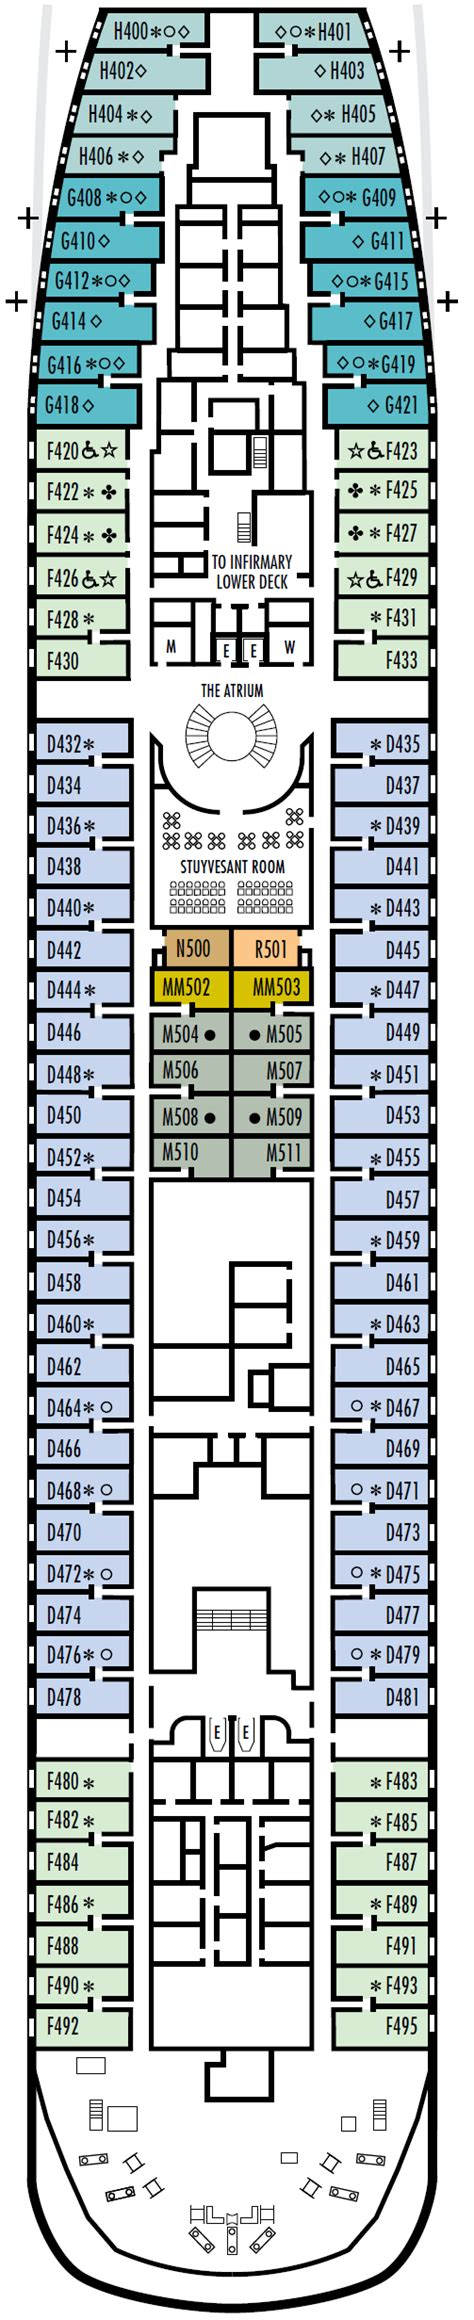 Prinsendam Deck Plans 2010 by Prinsendam America Line Cruise Direct